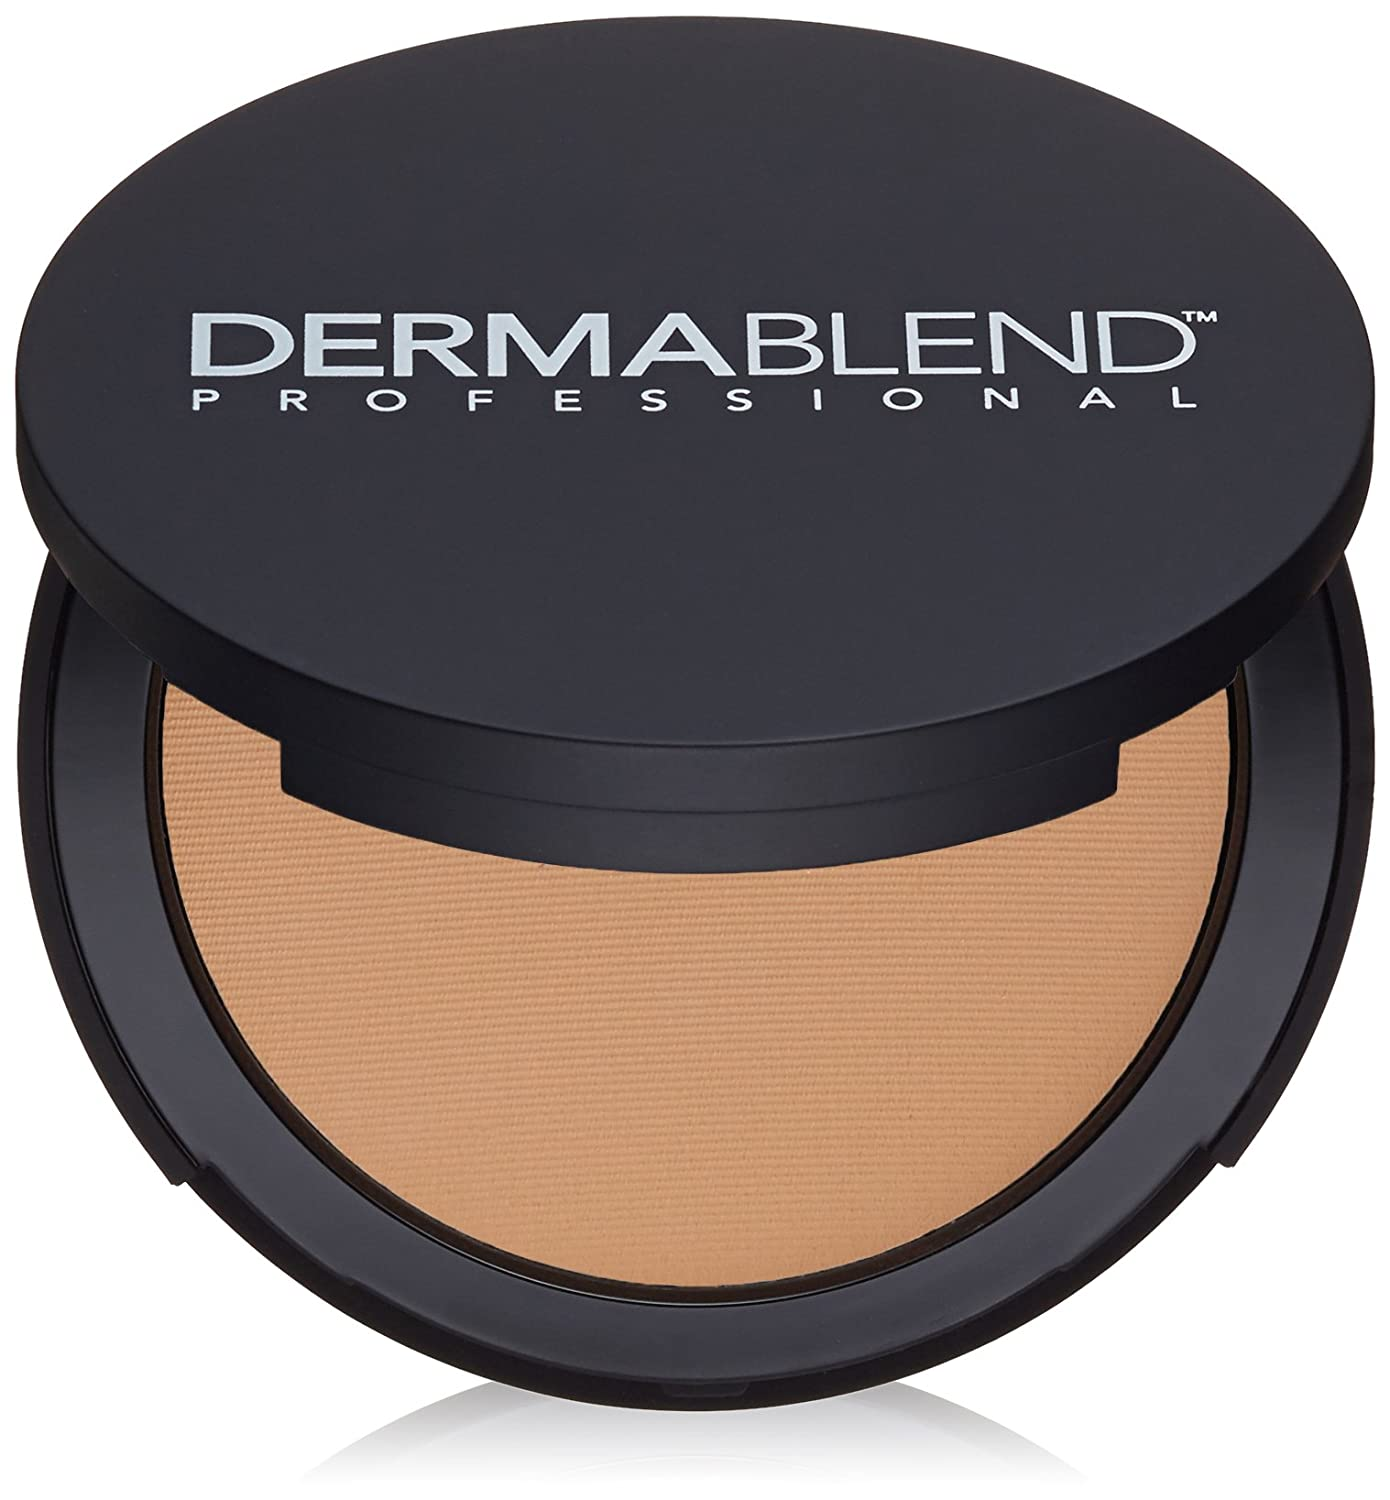 Dermablend Intense Powder Camo Foundation Sand S11689